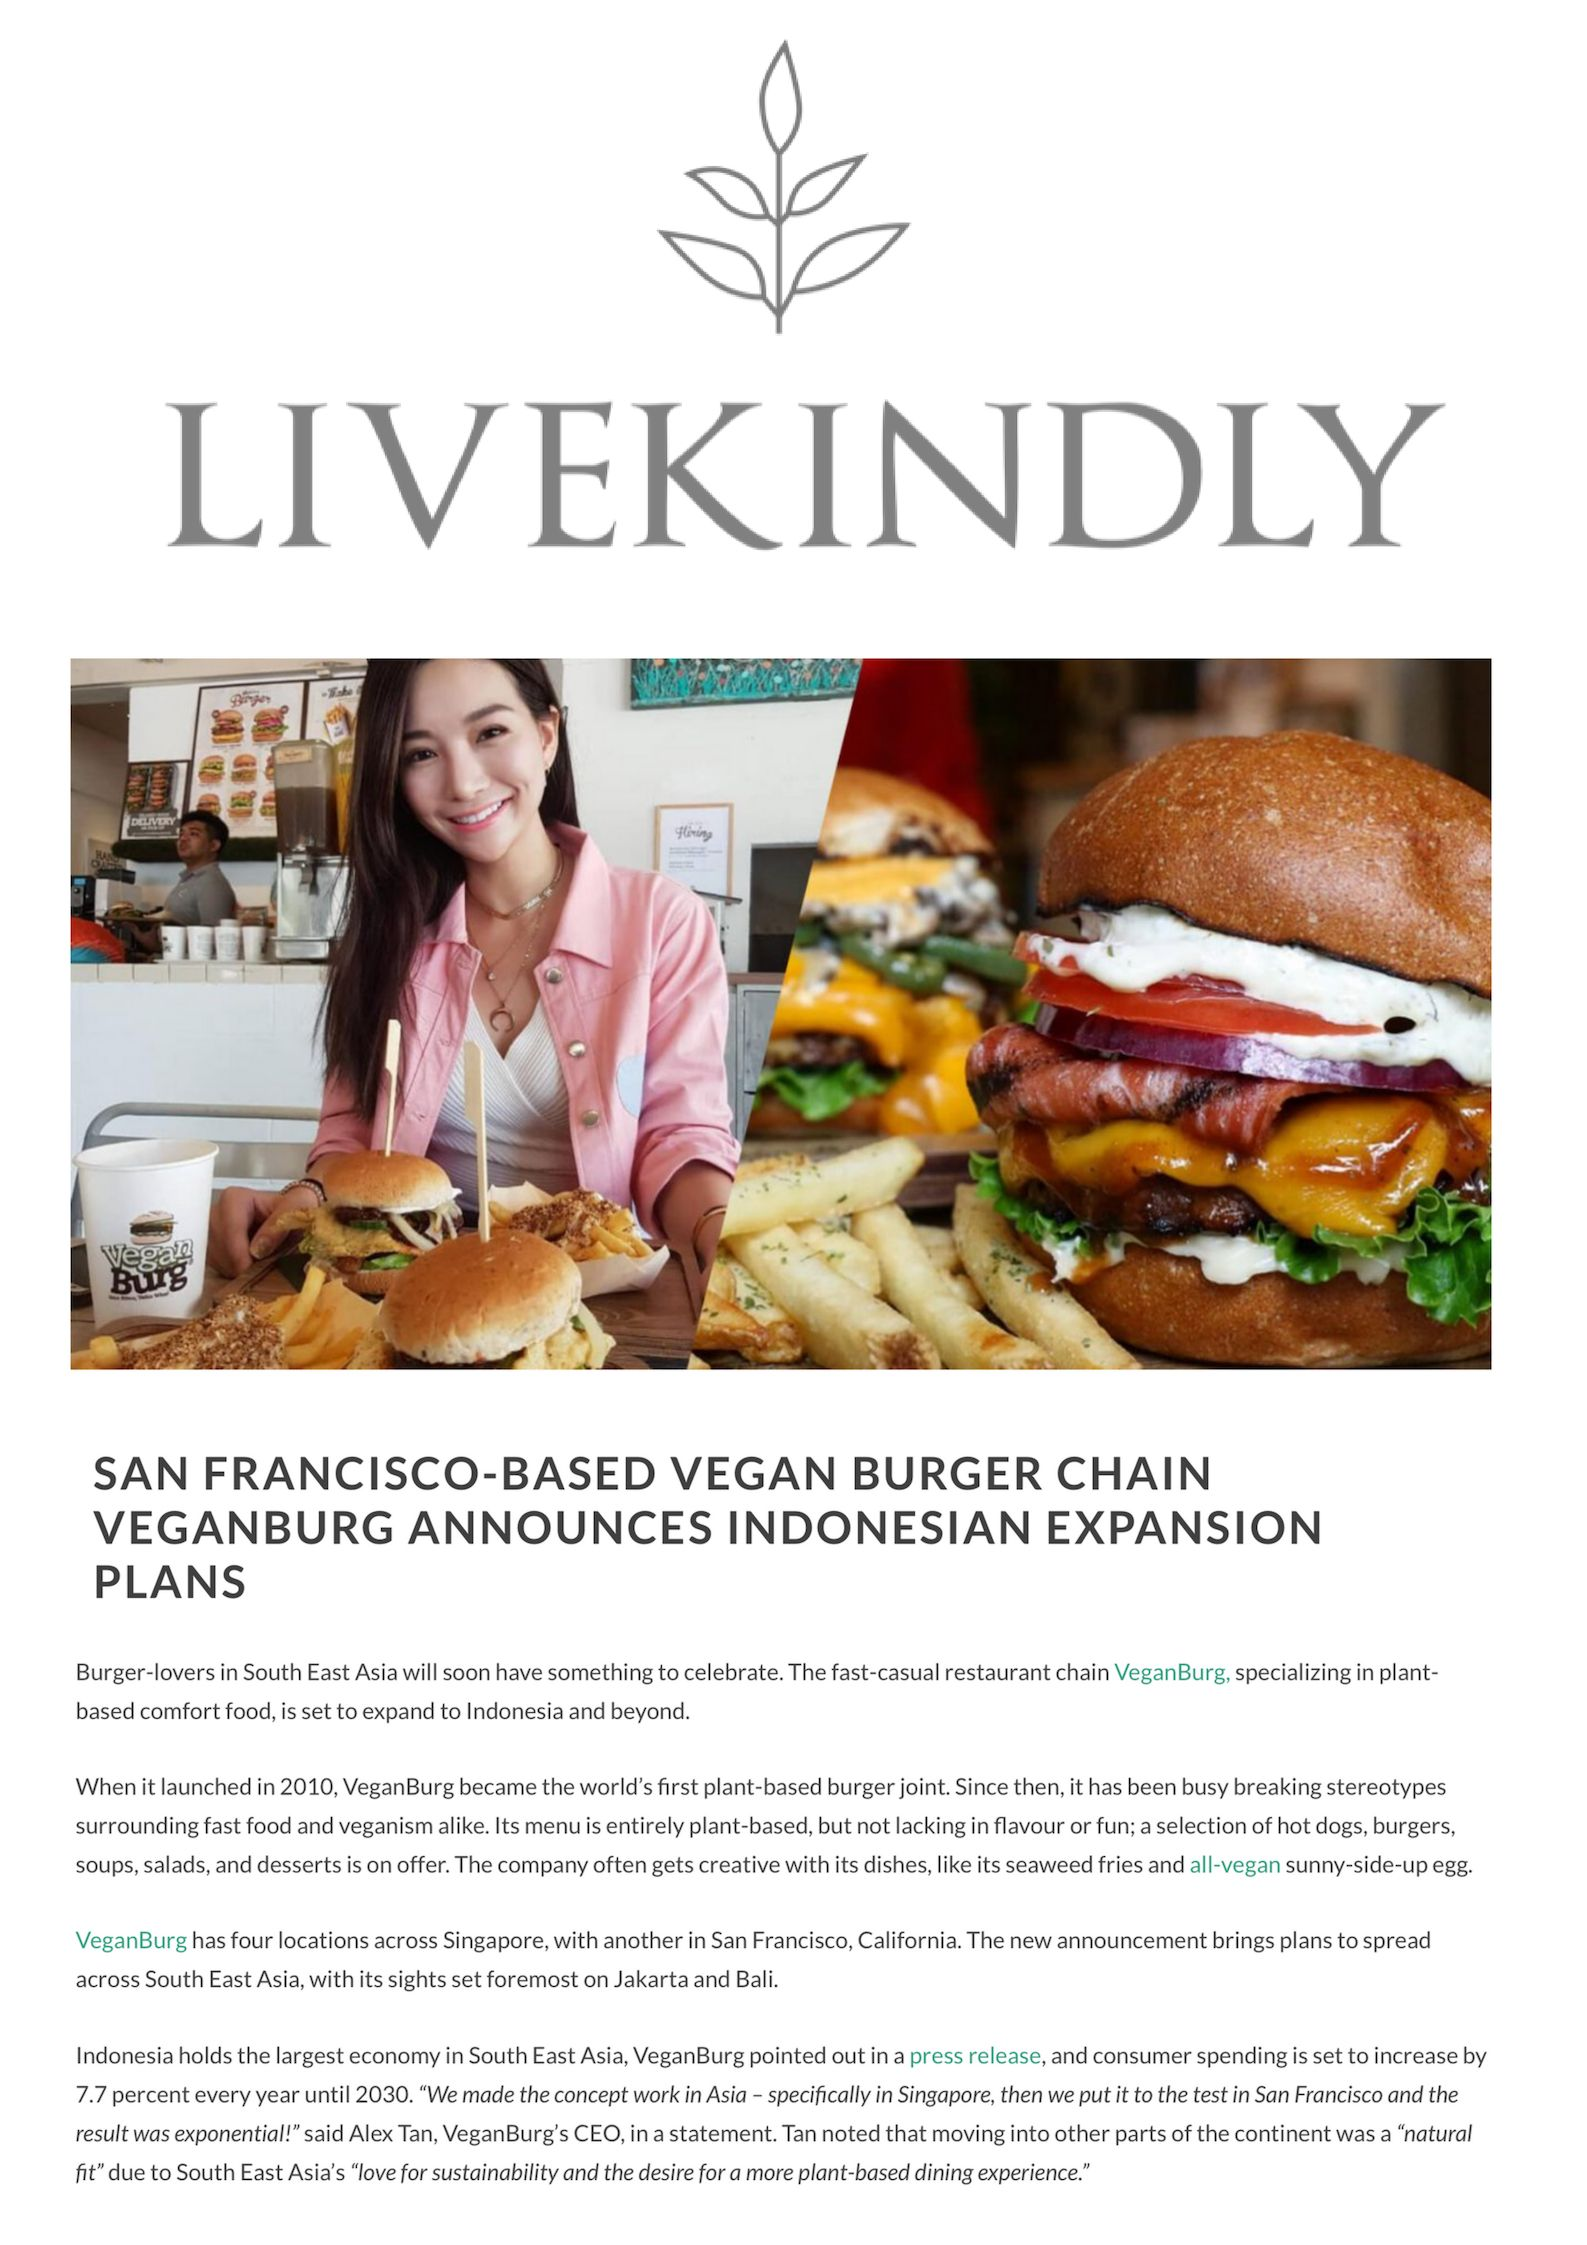 Vegan fast food burger chain VeganBurg has announced its expansion plans across South East Asia, beginning in Jakarta, Indonesia_.jpg